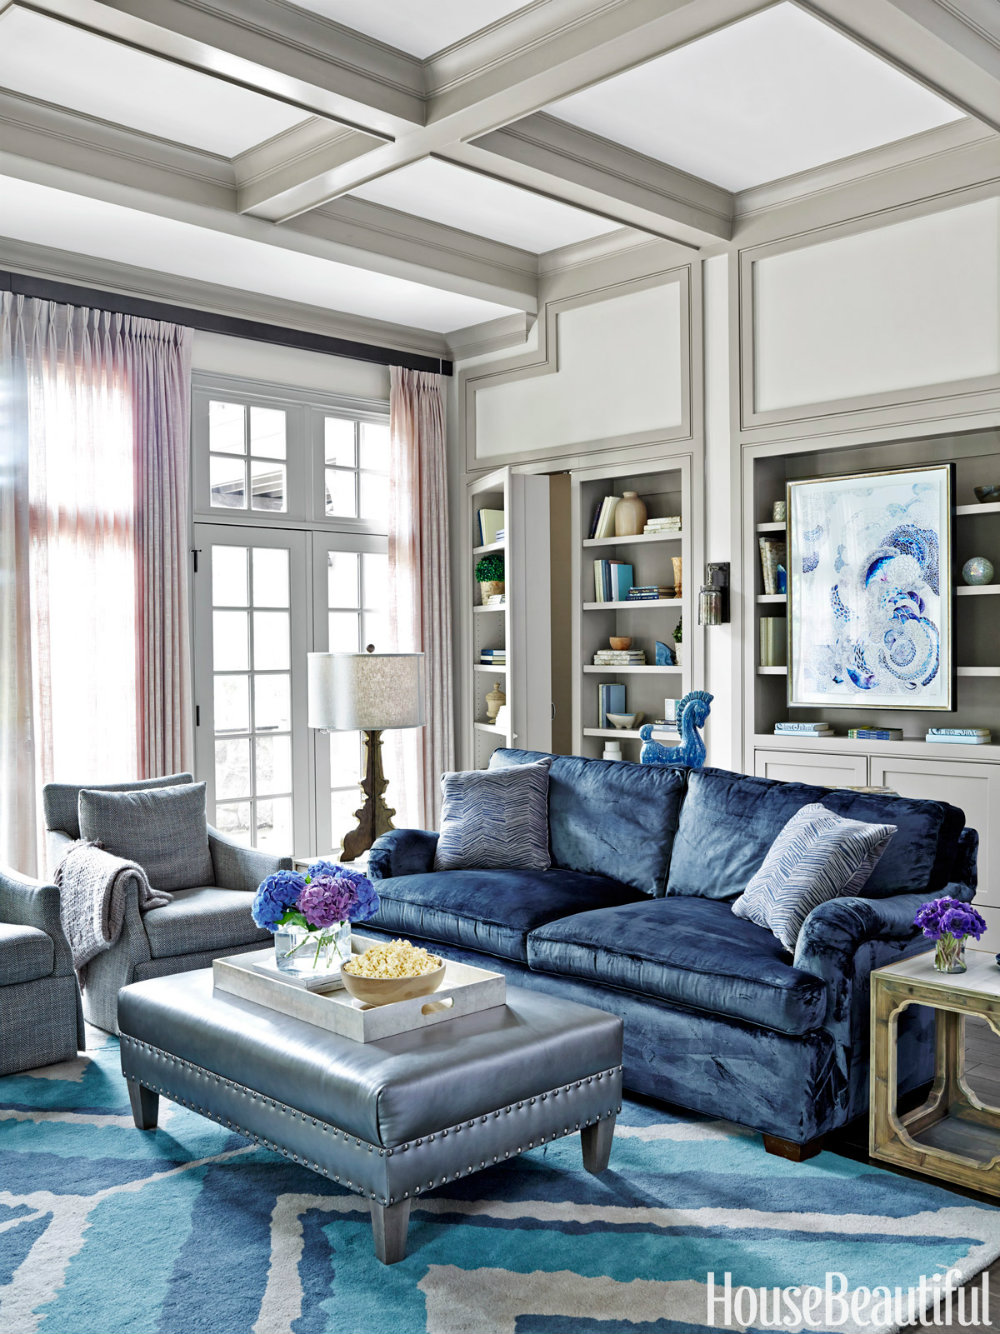 6 Ways to Use the Trendy Navy Blue and Gold Color Scheme 06 navy blue The Trendy Navy Blue and Gold Color Scheme – 6 ways to use it 6 Ways to Use the Trendy Navy Blue and Gold Color Scheme 06